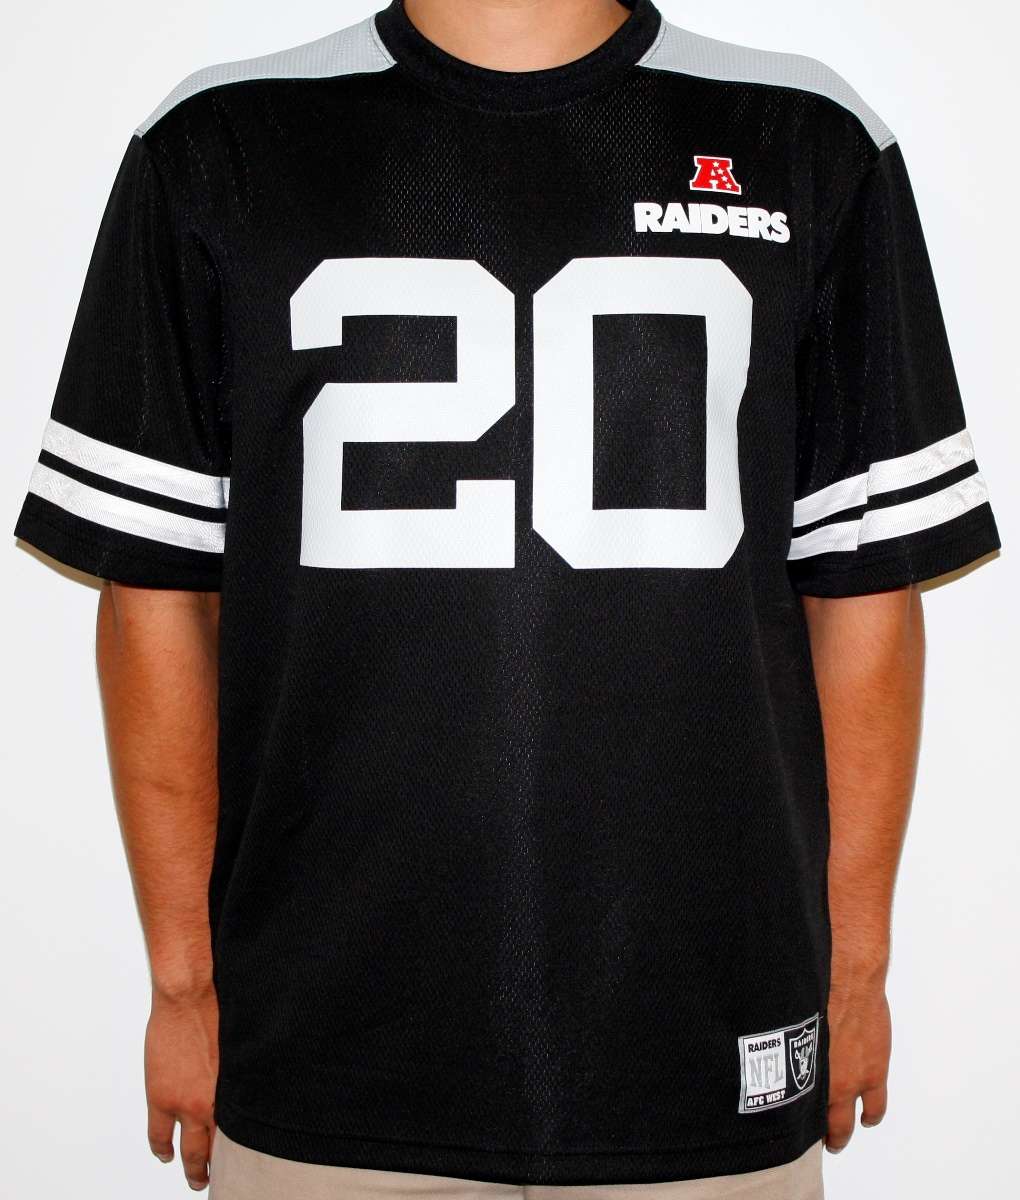 huge selection of a3e0b 91d66 Howie Long Oakland Raiders NFL Mitchell & Ness Throwback ...